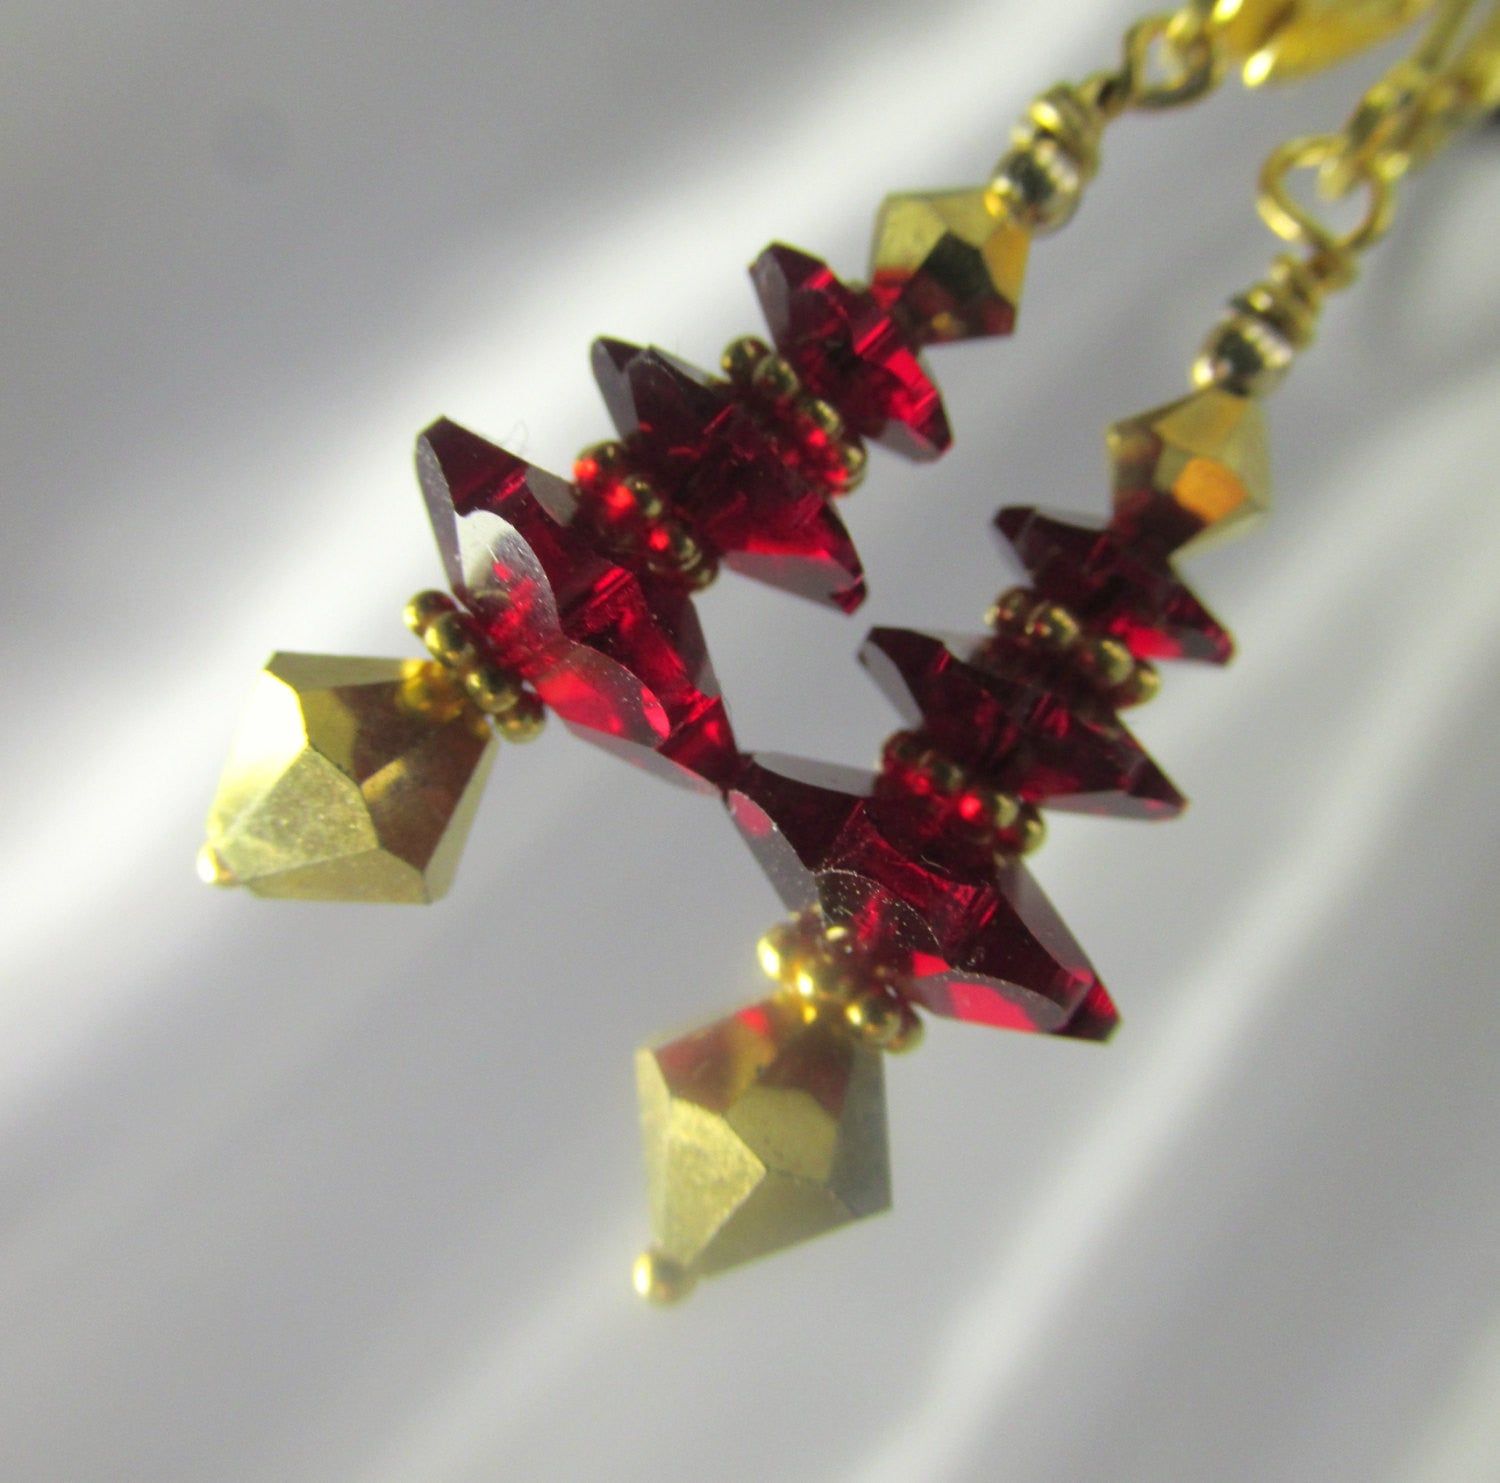 Christmas Tree Earrings in Dark Red Siam Swarovski Crystals on 14k GF leverbacks or posts - Odyssey Creations